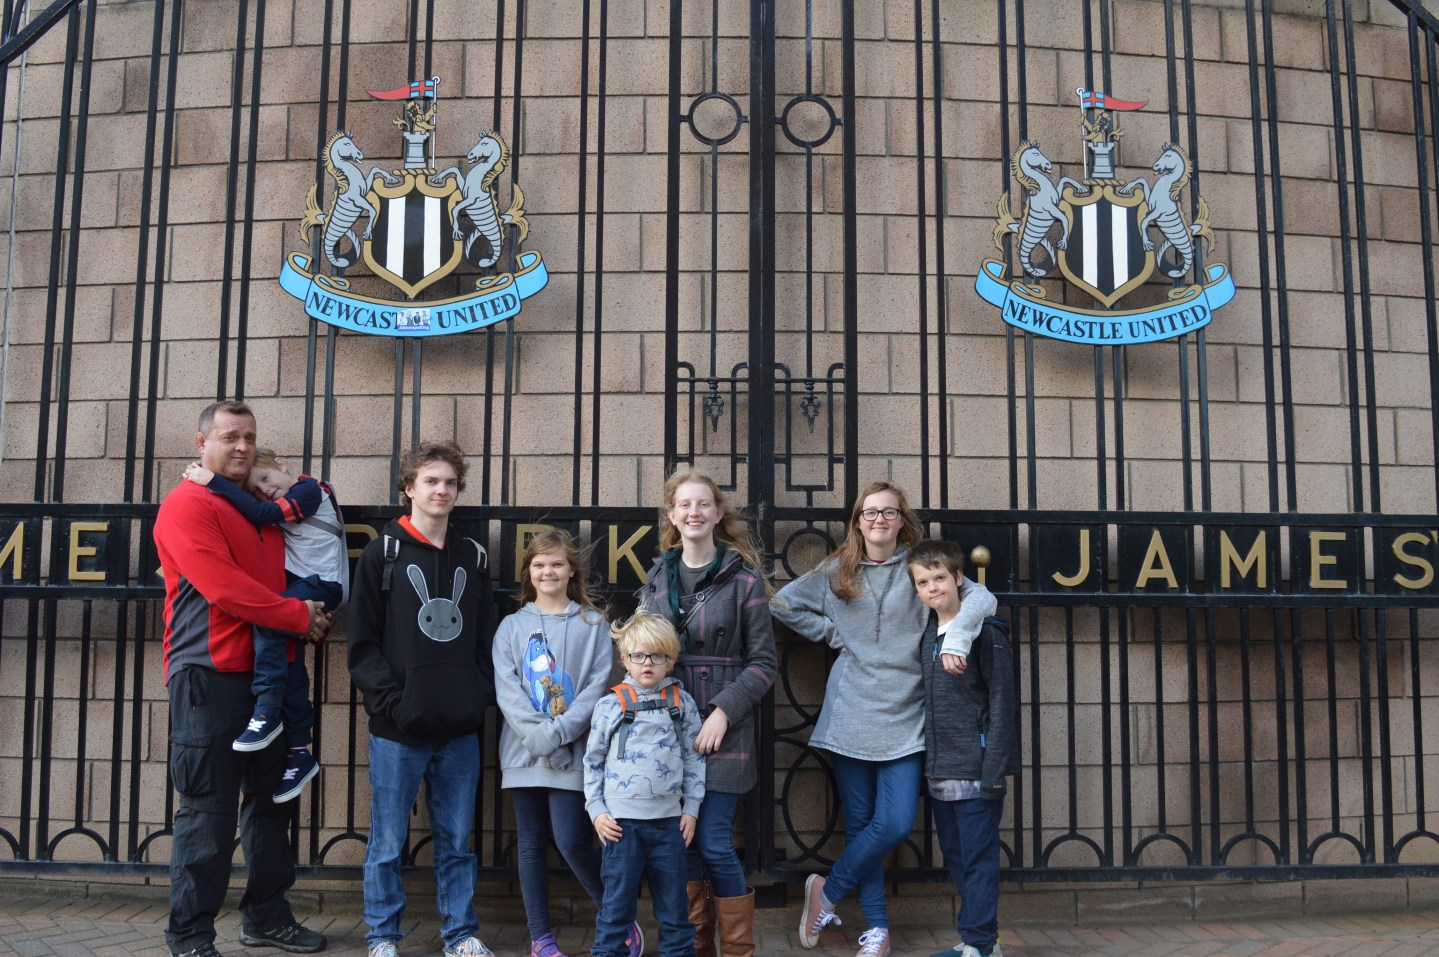 A Day Trip To Newcastle